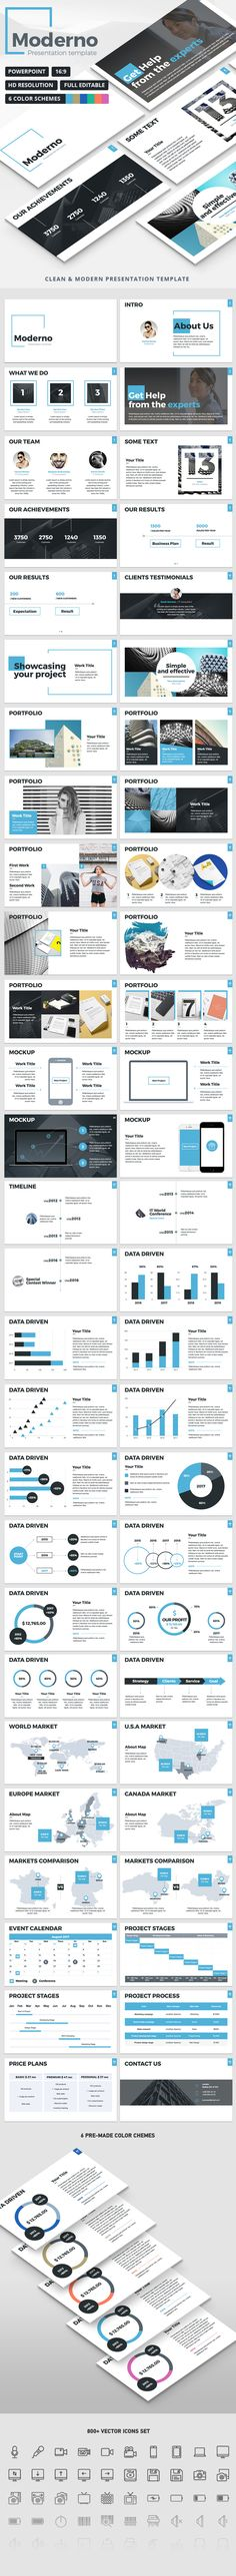 Moderno - PowerPoint Presentation Template. Download here: https://graphicriver.net/item/moderno-powerpoint-presentation-template/17122799?ref=ksioks